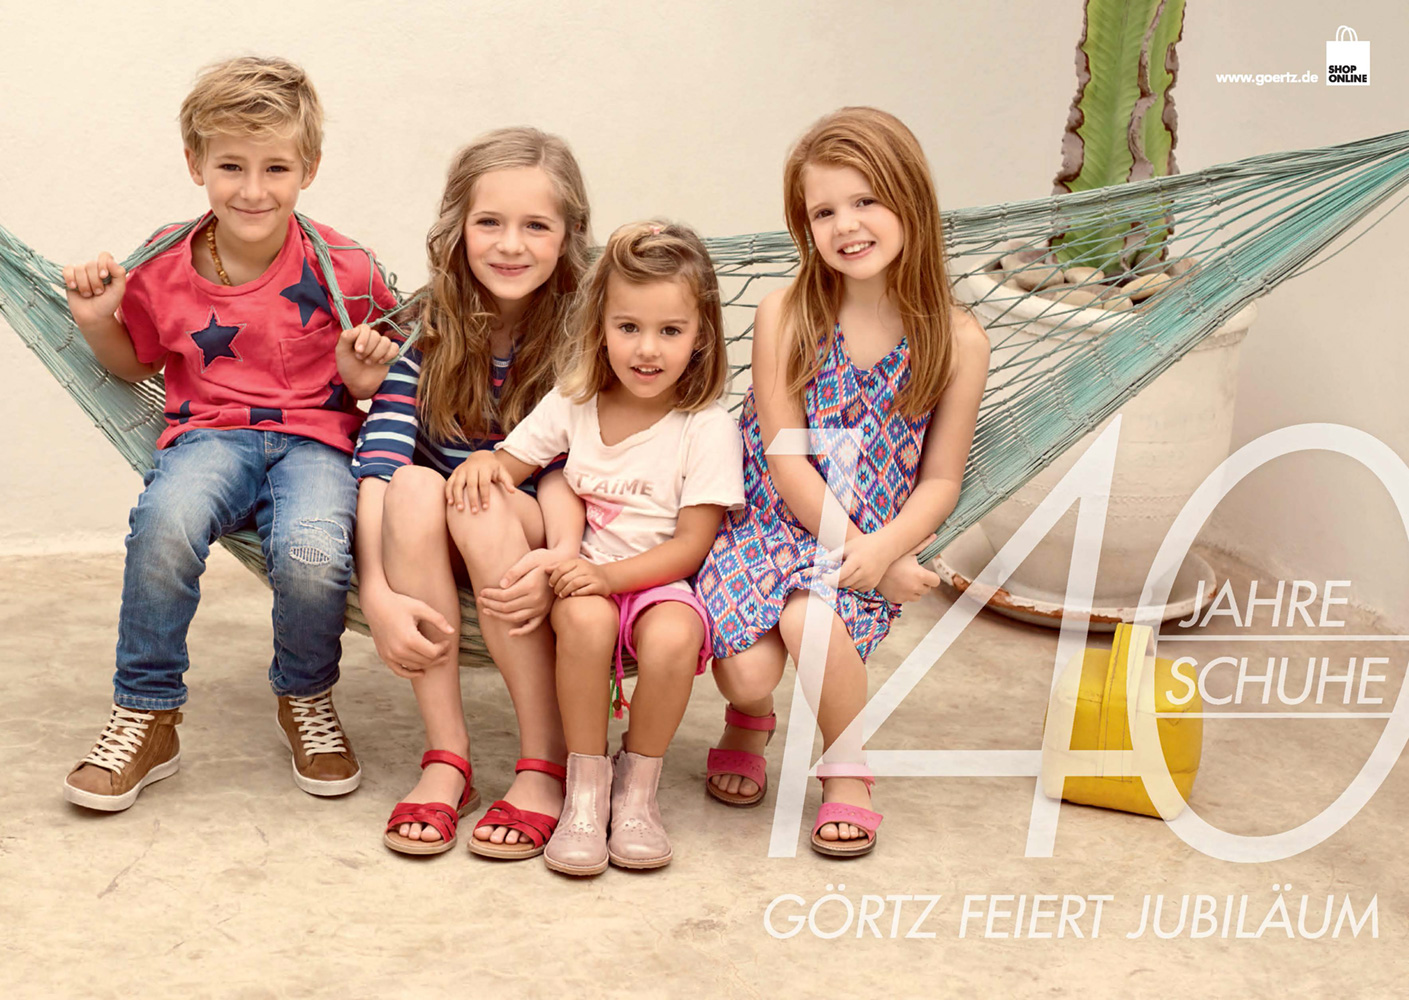 Goertz-Kids-Catalogue-AW-2015.jpg